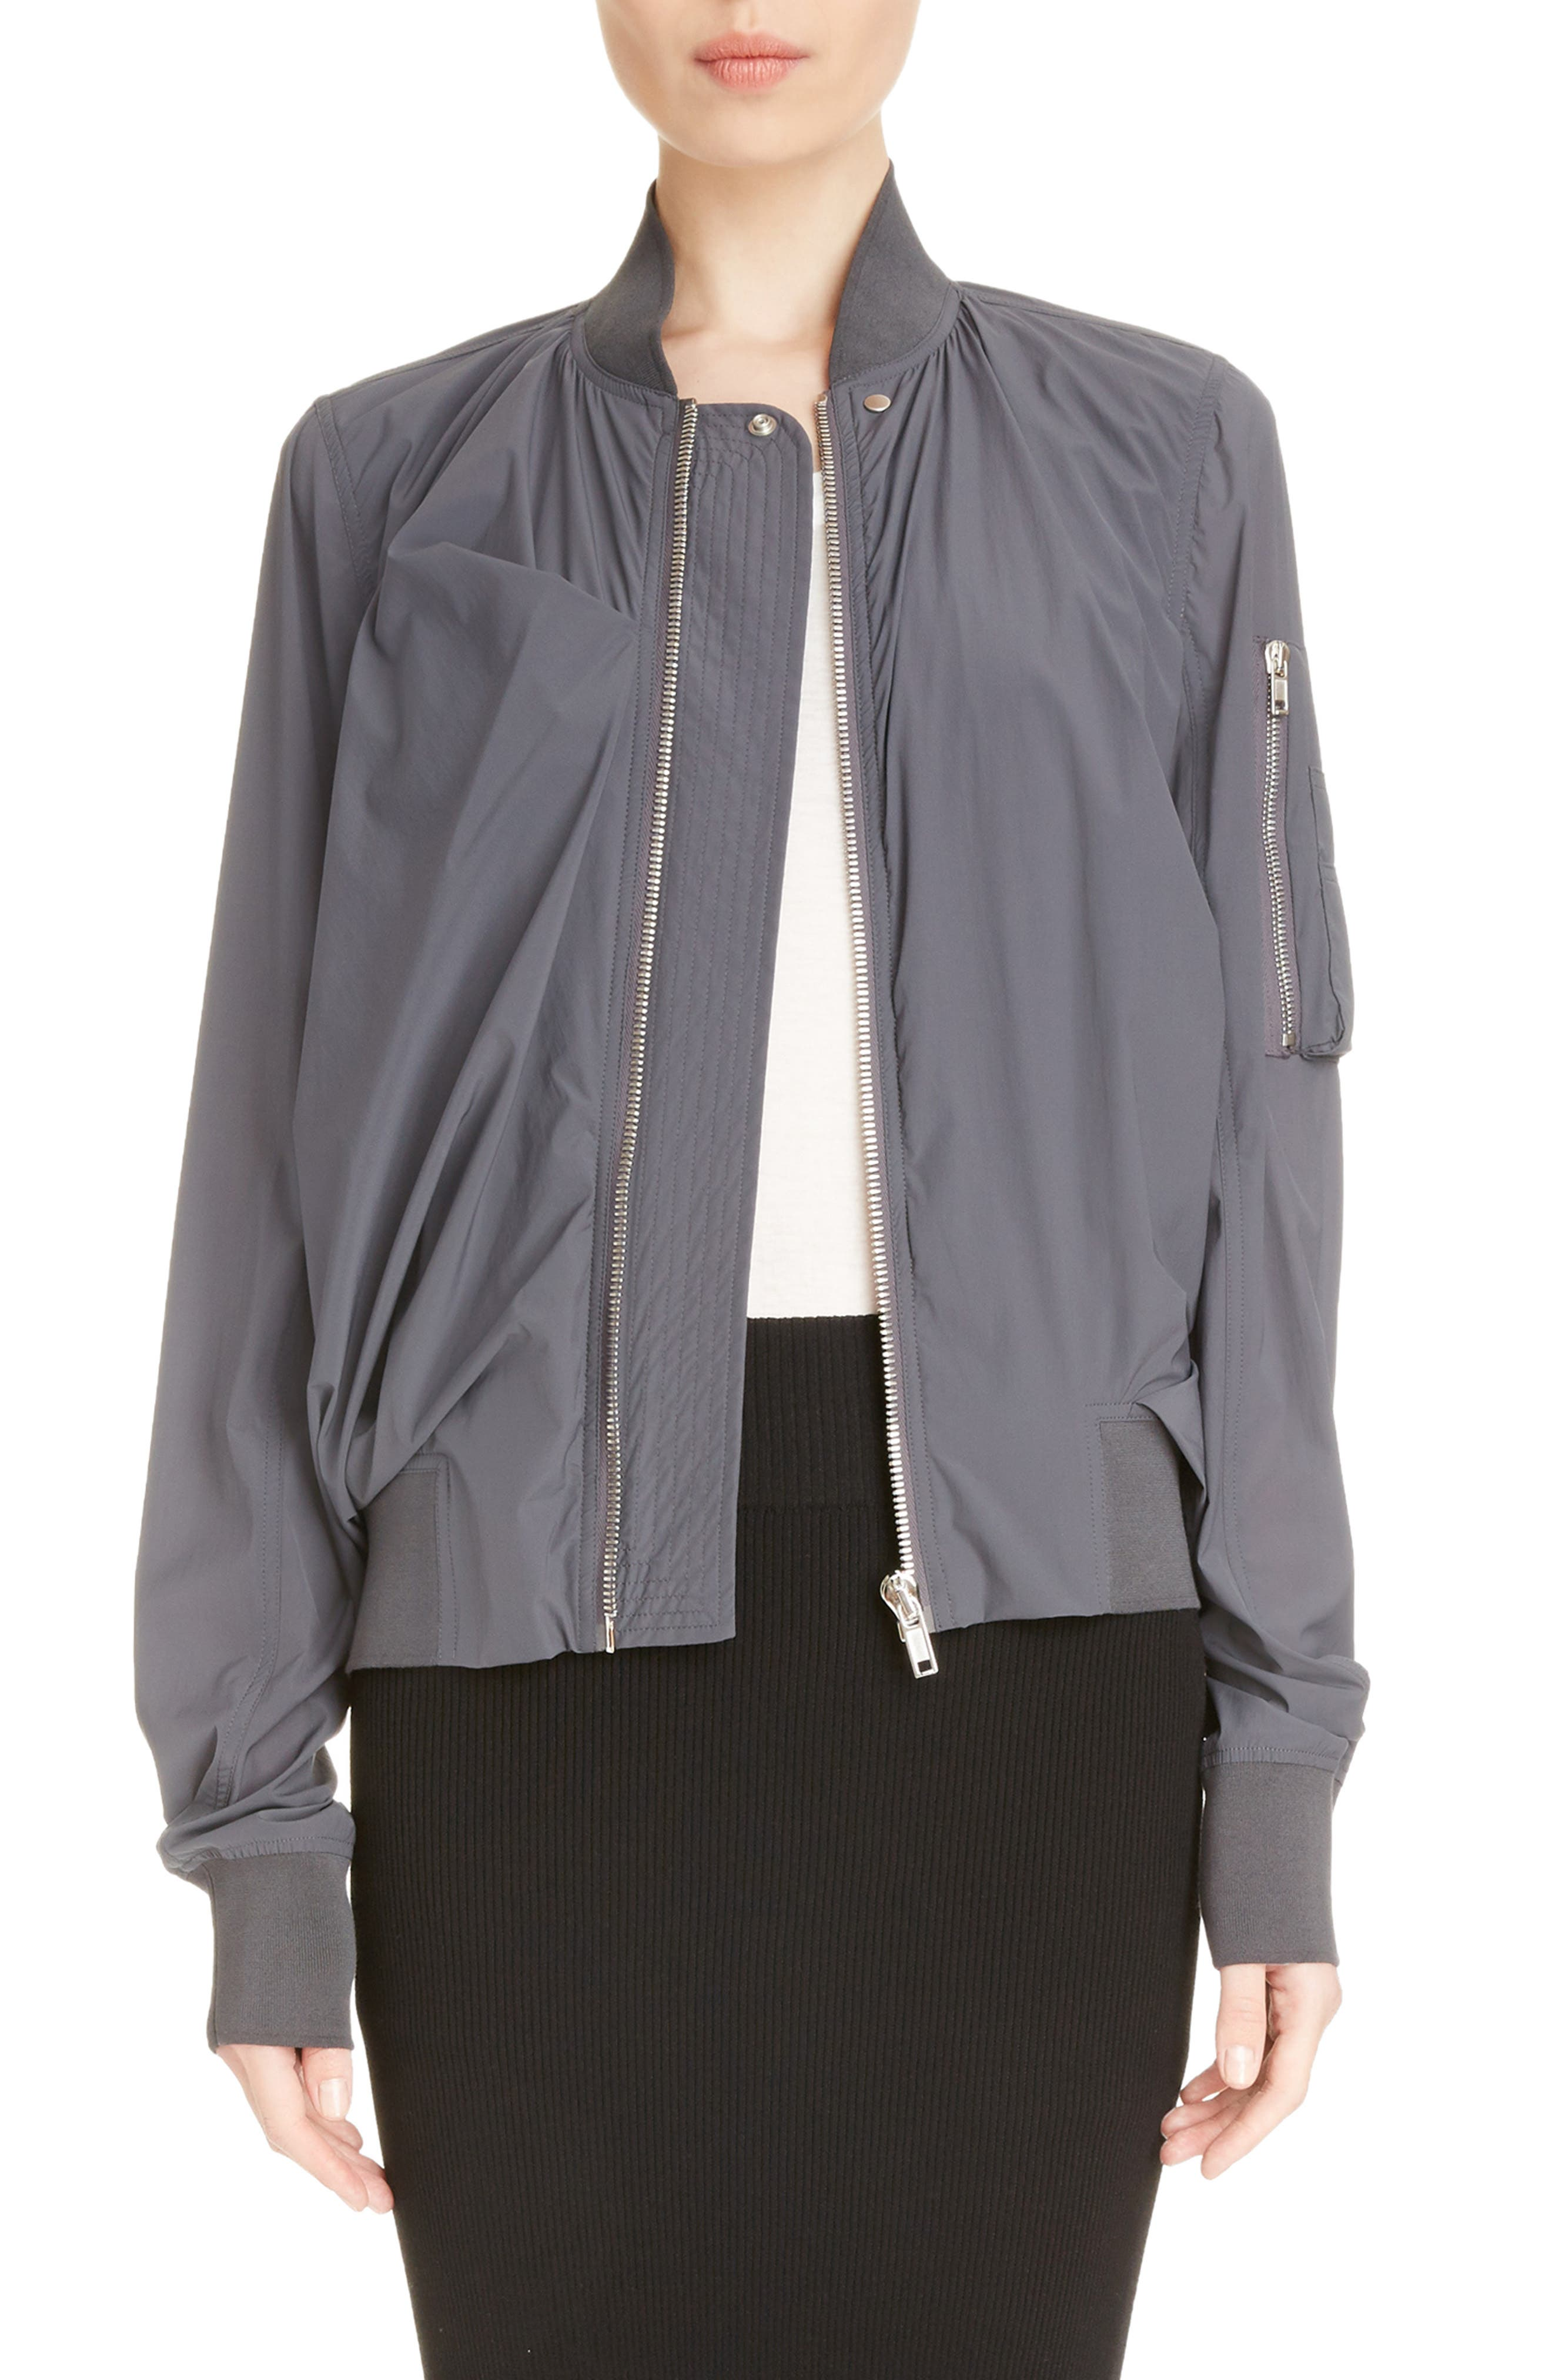 Swoop Back Bomber,                         Main,                         color, 020